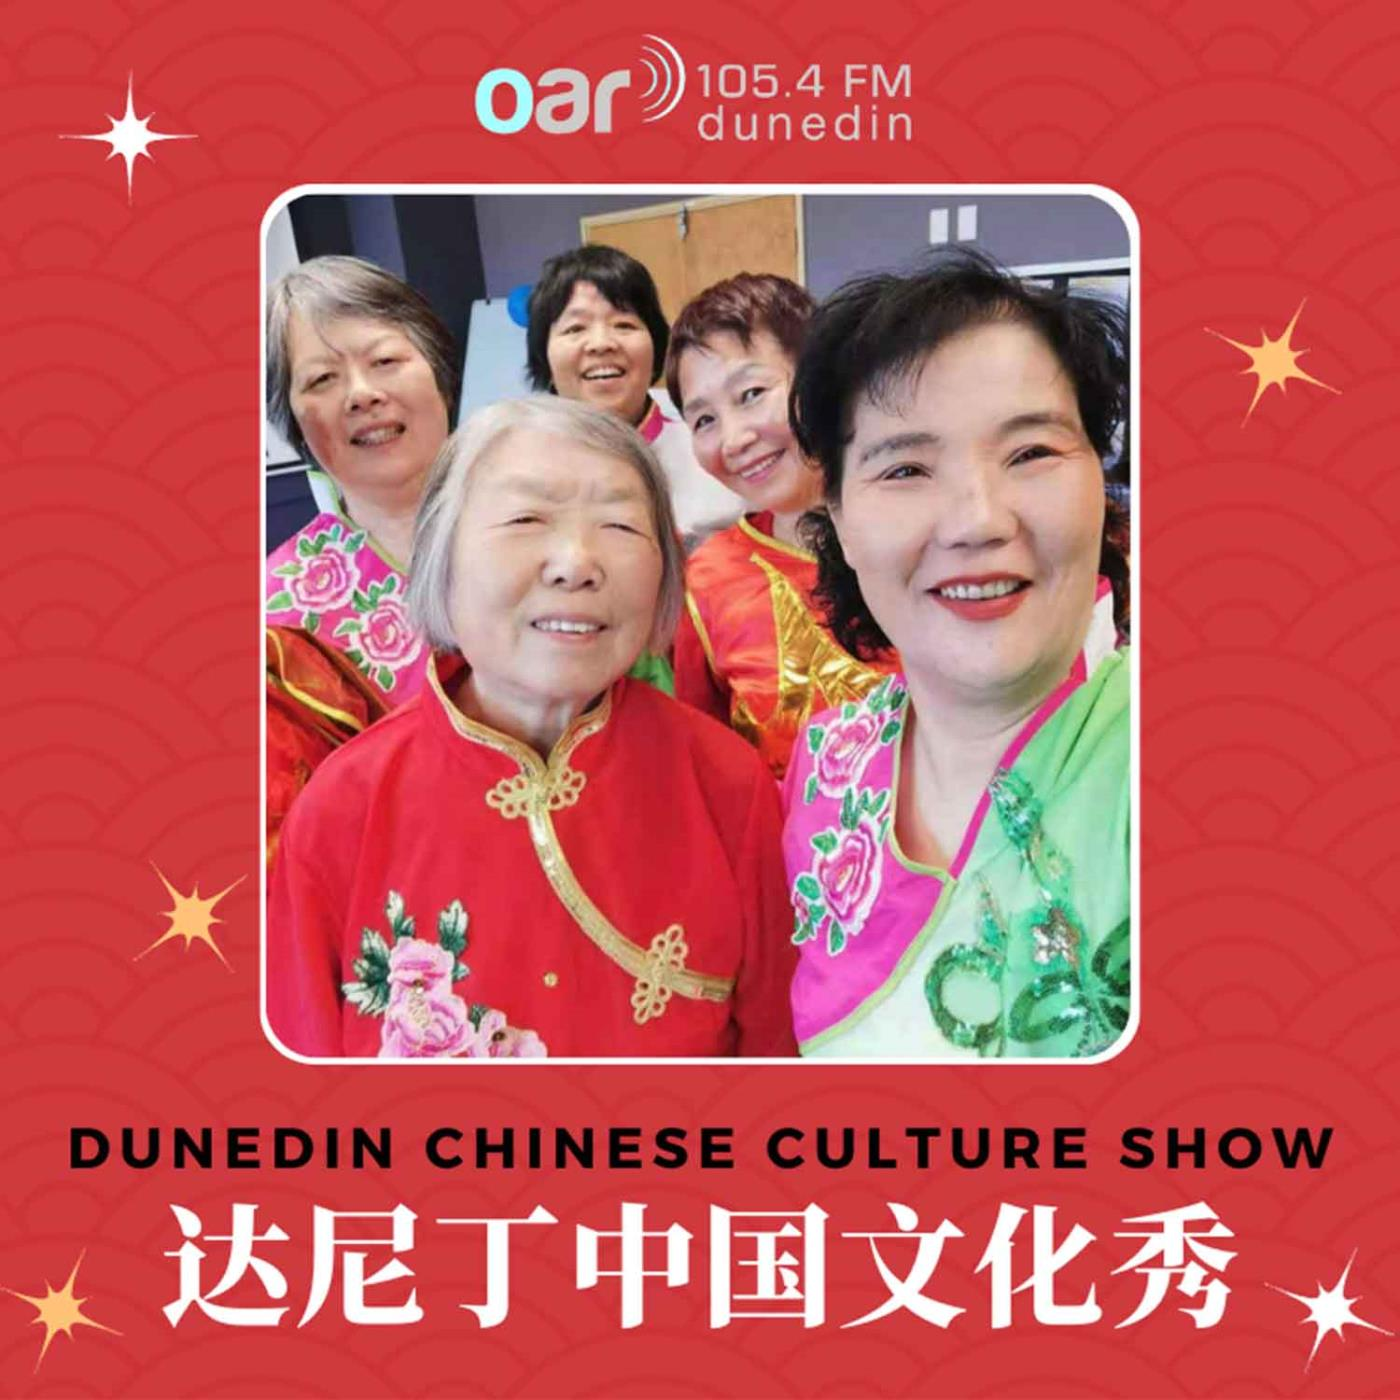 Dunedin Chinese Culture Show - 23-04-2021 - E2 - Mythical Chinese stories